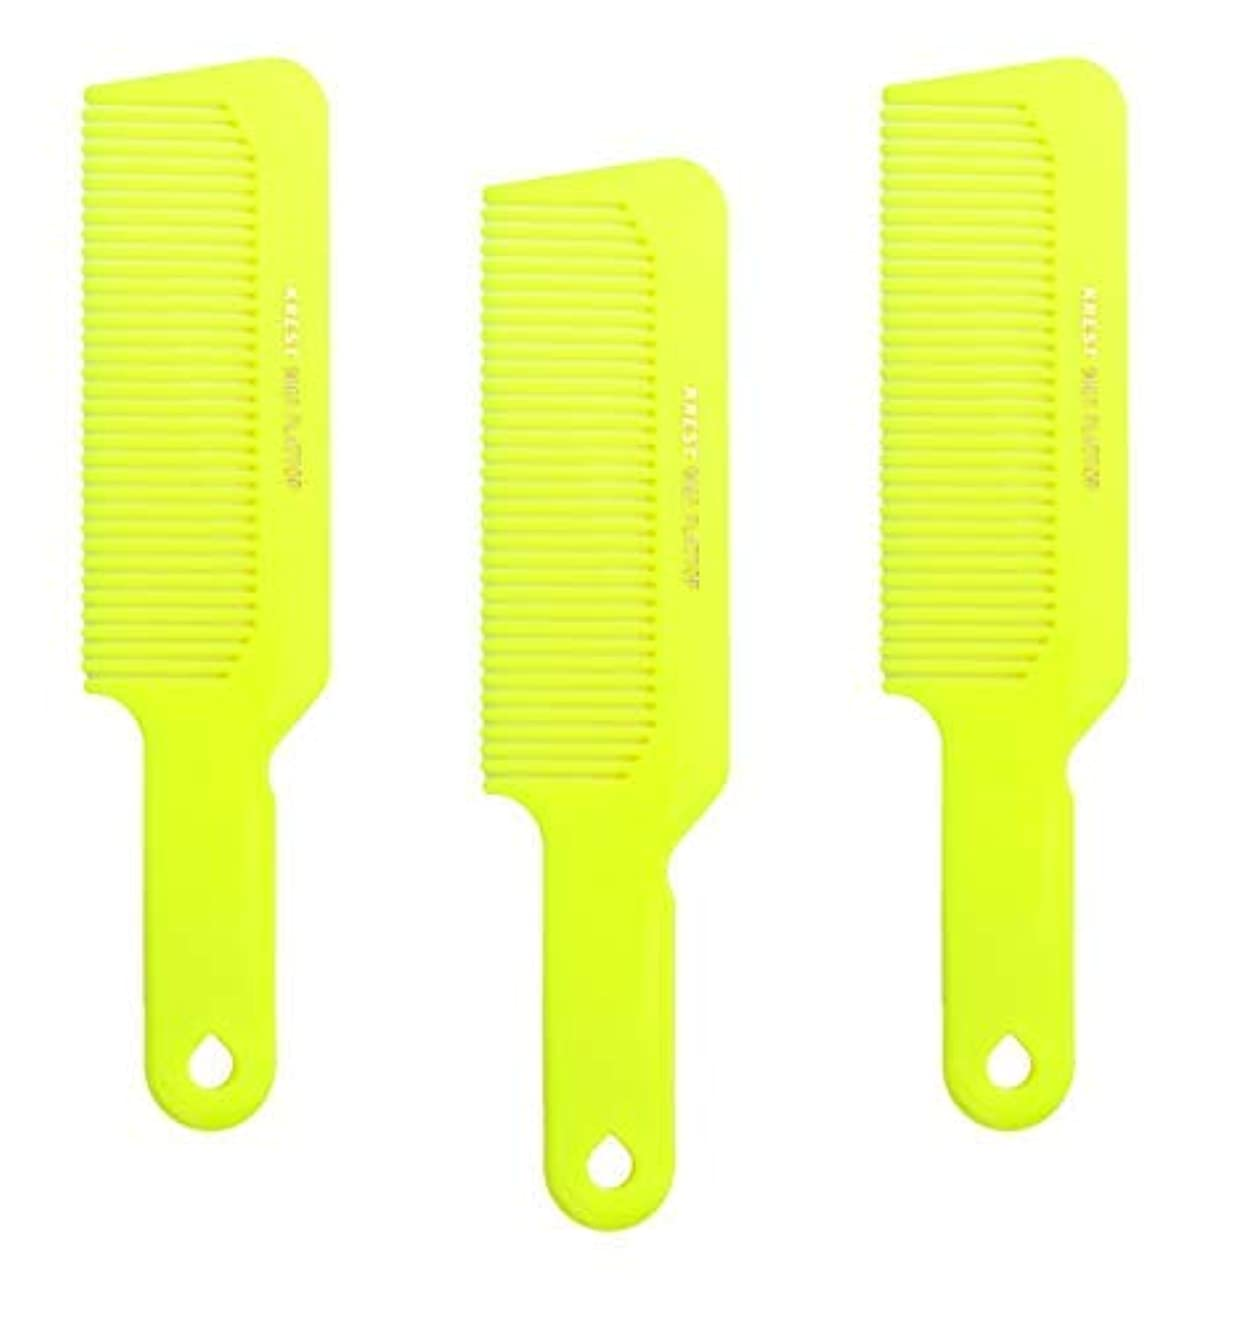 ビクター認証イブHair Comb 8-3/4 Flattop Hair Cutting Comb. Barbers Hairdresser Comb. Model 9001. 3 Combs (Neon Yellow) [並行輸入品]